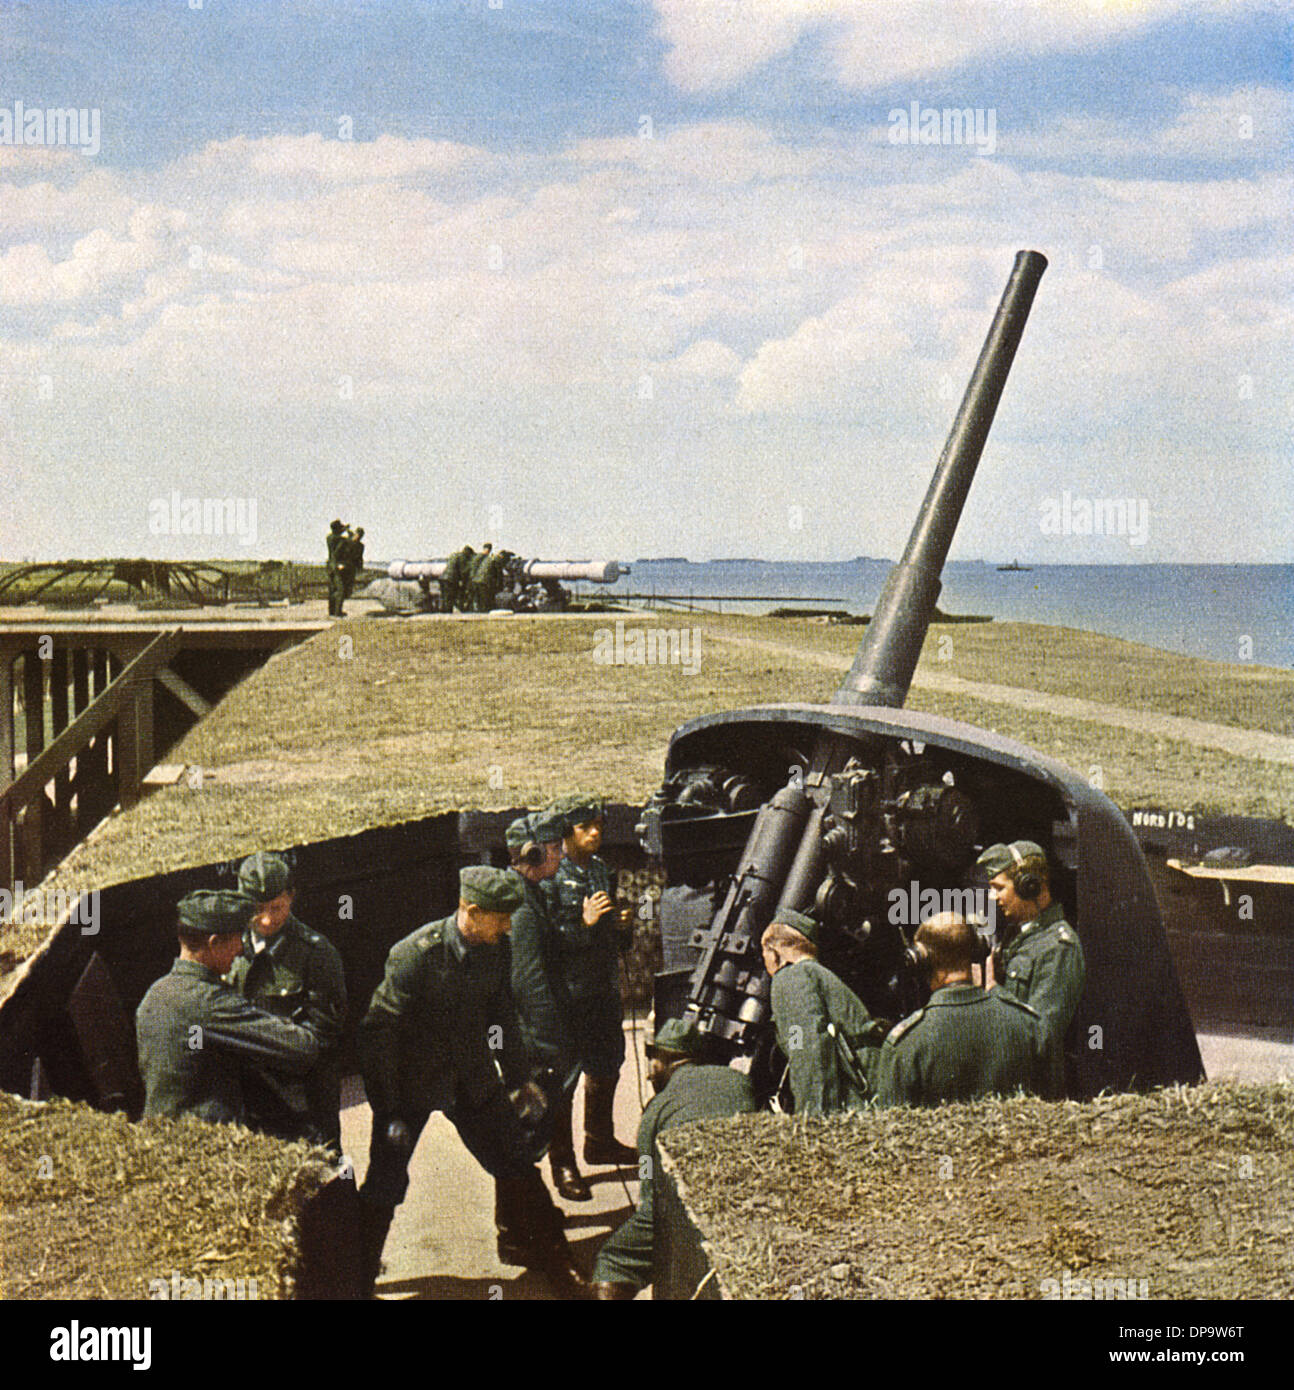 WAFFE/ANTI-AIRCRAFT WW2 Stockbild